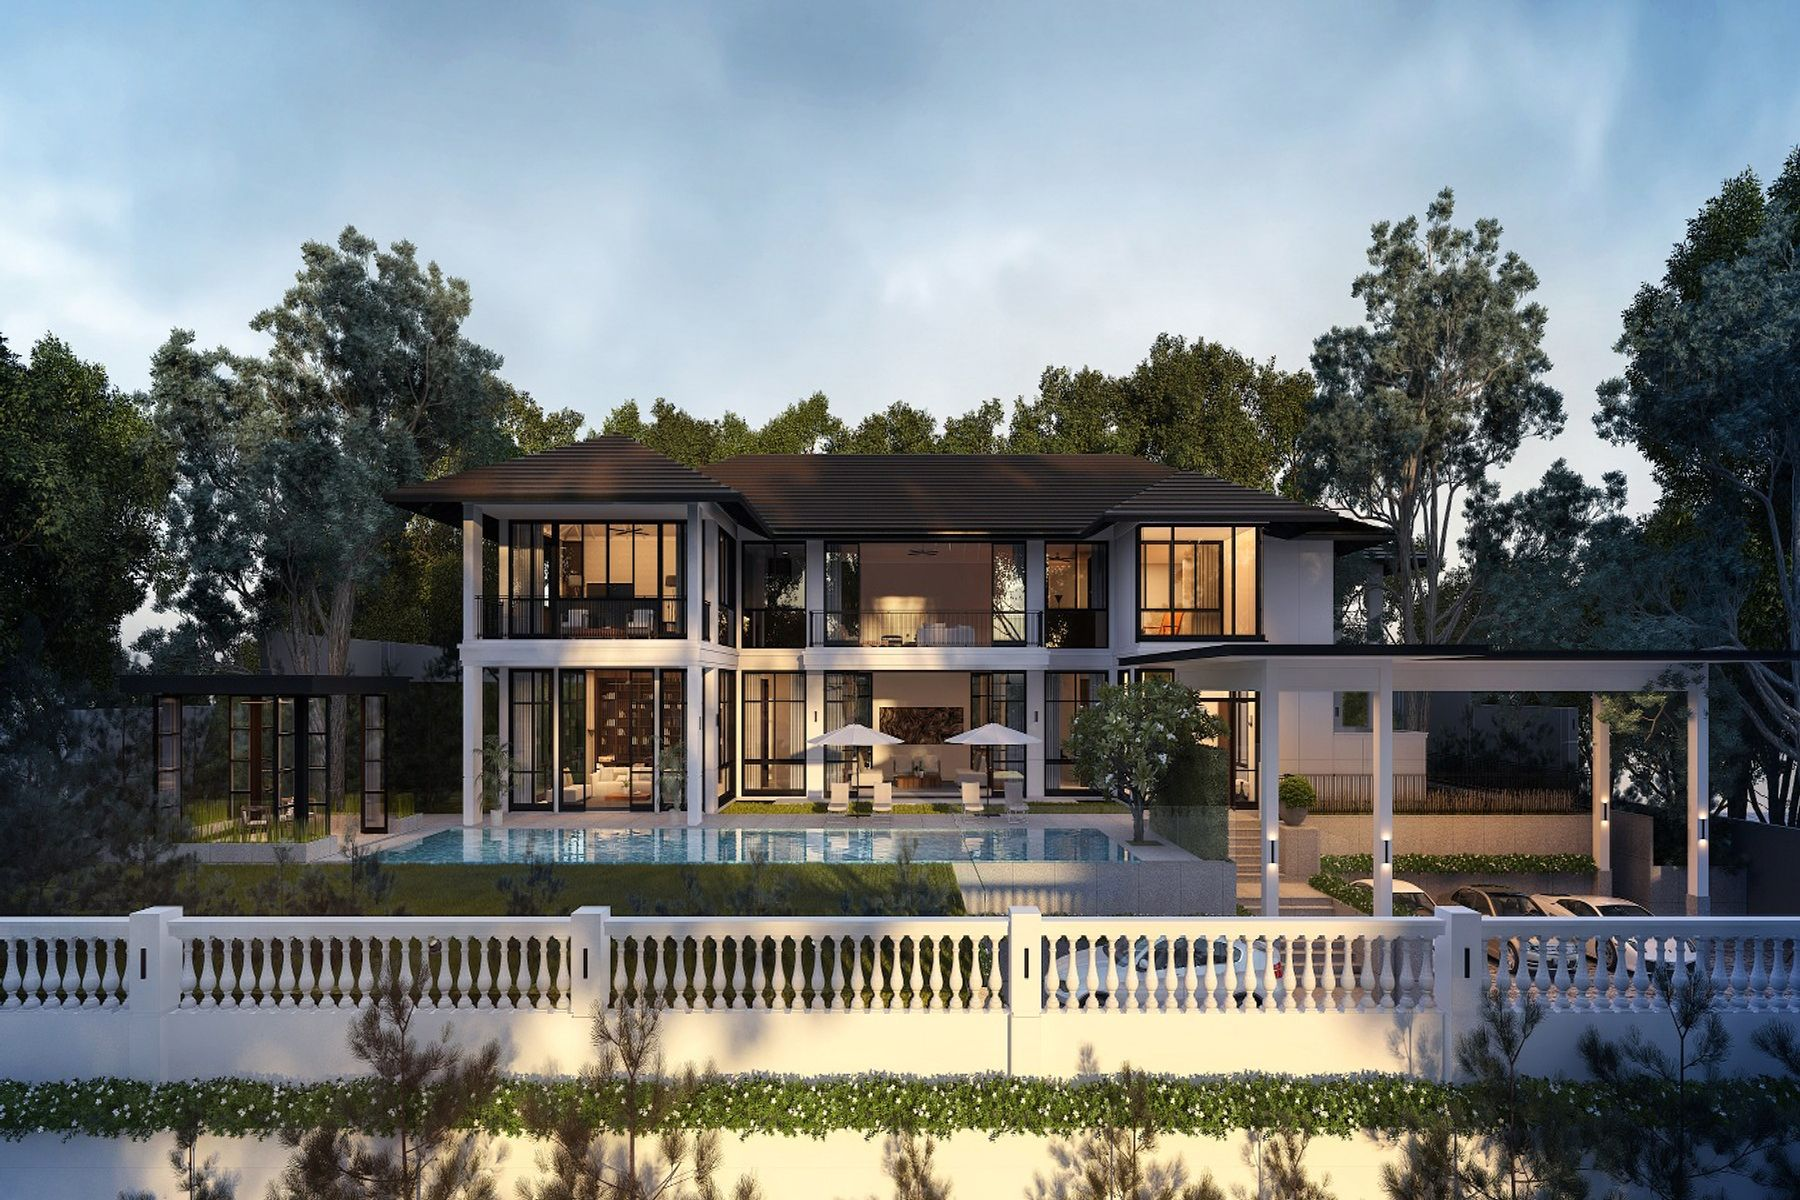 Single Family Home for Active at Good Class Bungalow Singapore, Cities In Singapore Singapore